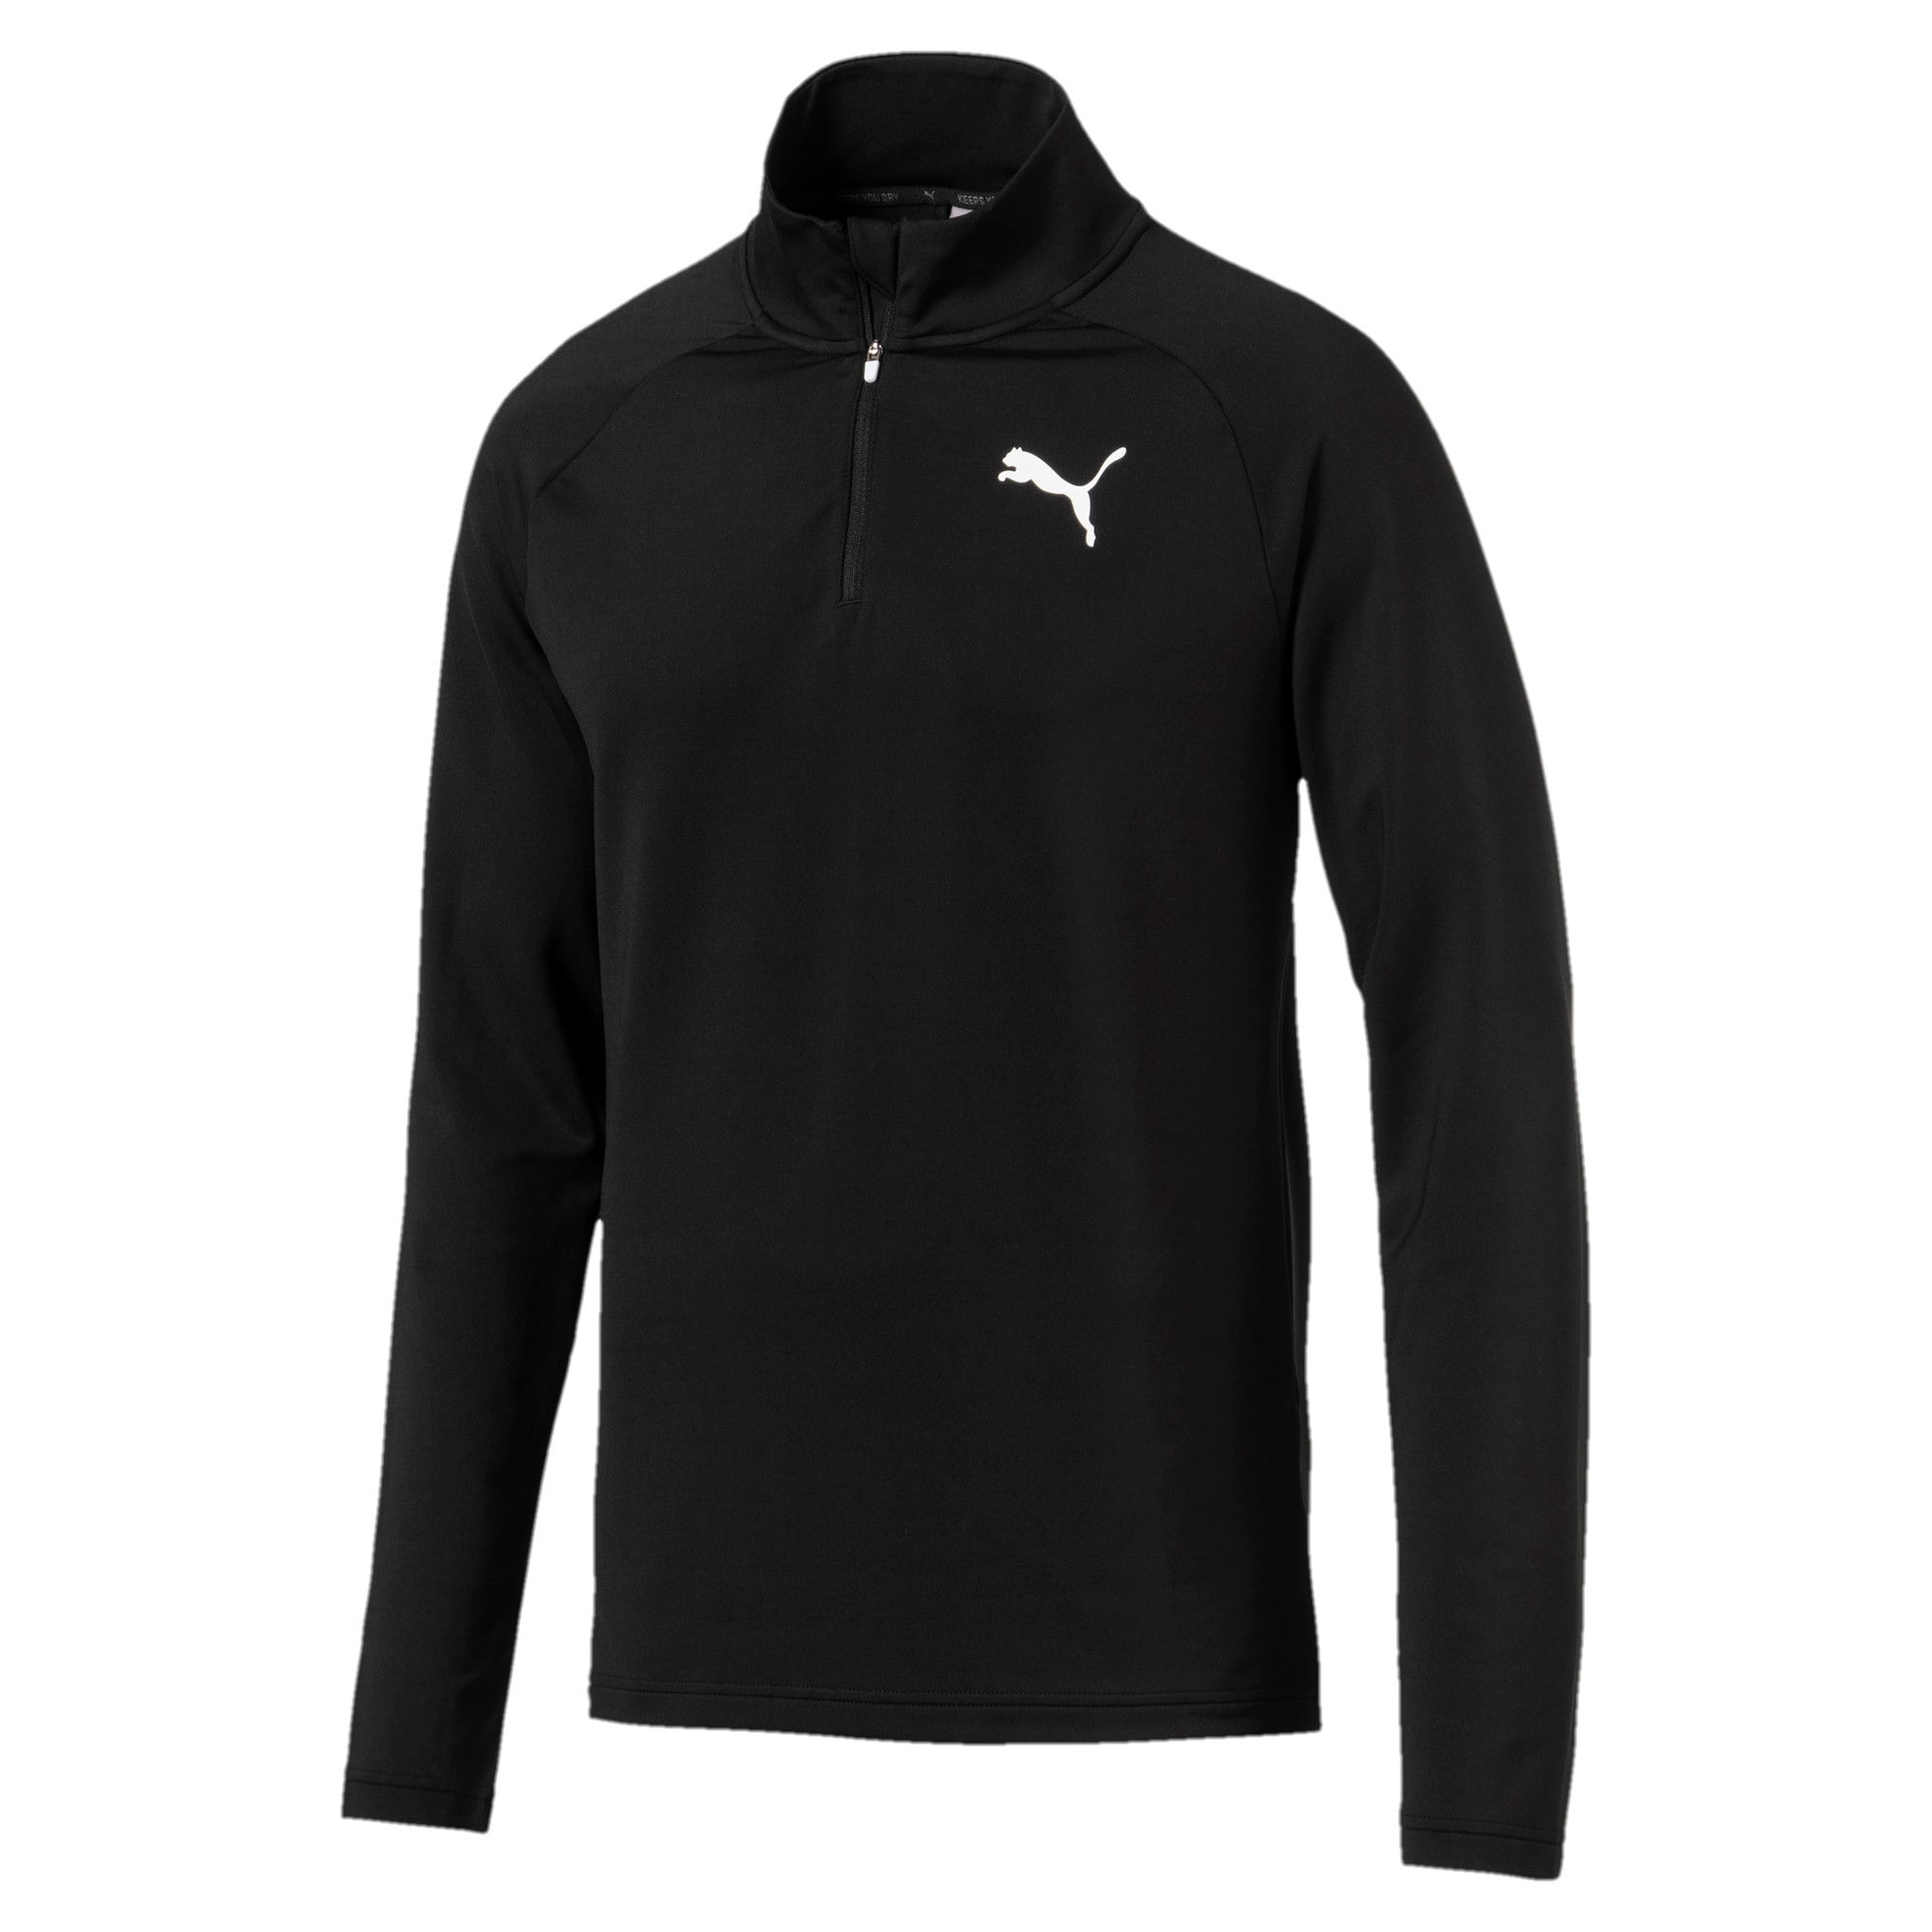 Thumbnail 1 of Active Men's Half Zip Sweater, Puma Black, medium